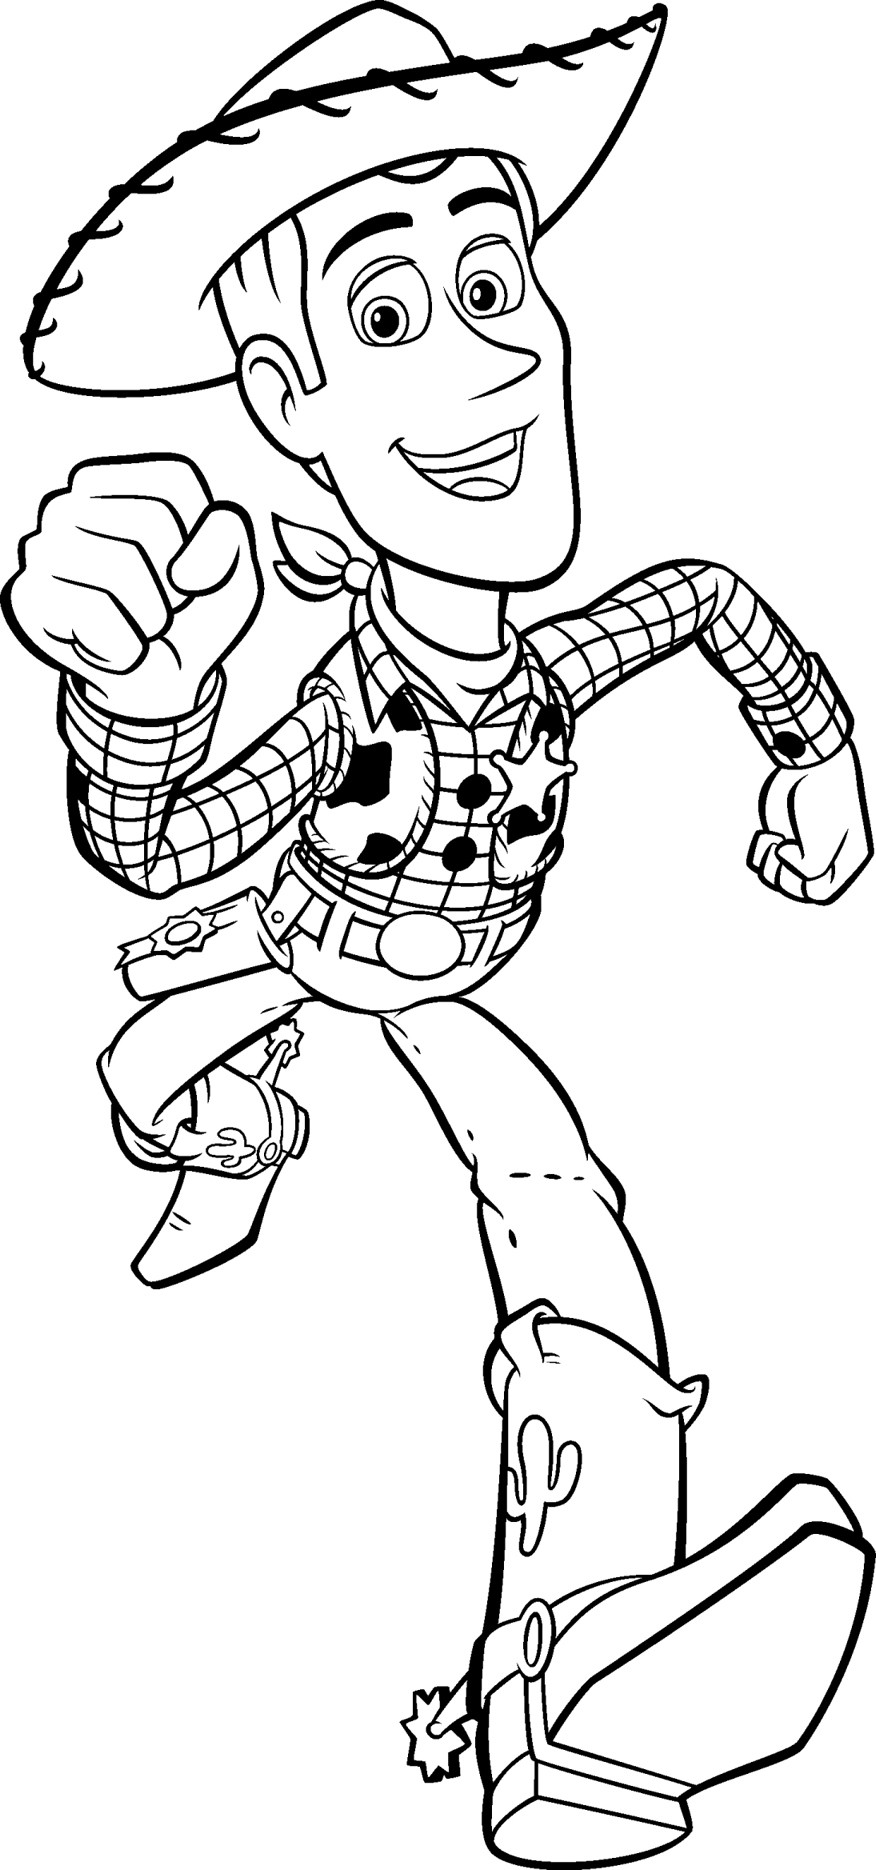 Best ideas about Printable Disney Coloring Sheets For Kids . Save or Pin Free Printable Toy Story Coloring Pages For Kids Now.